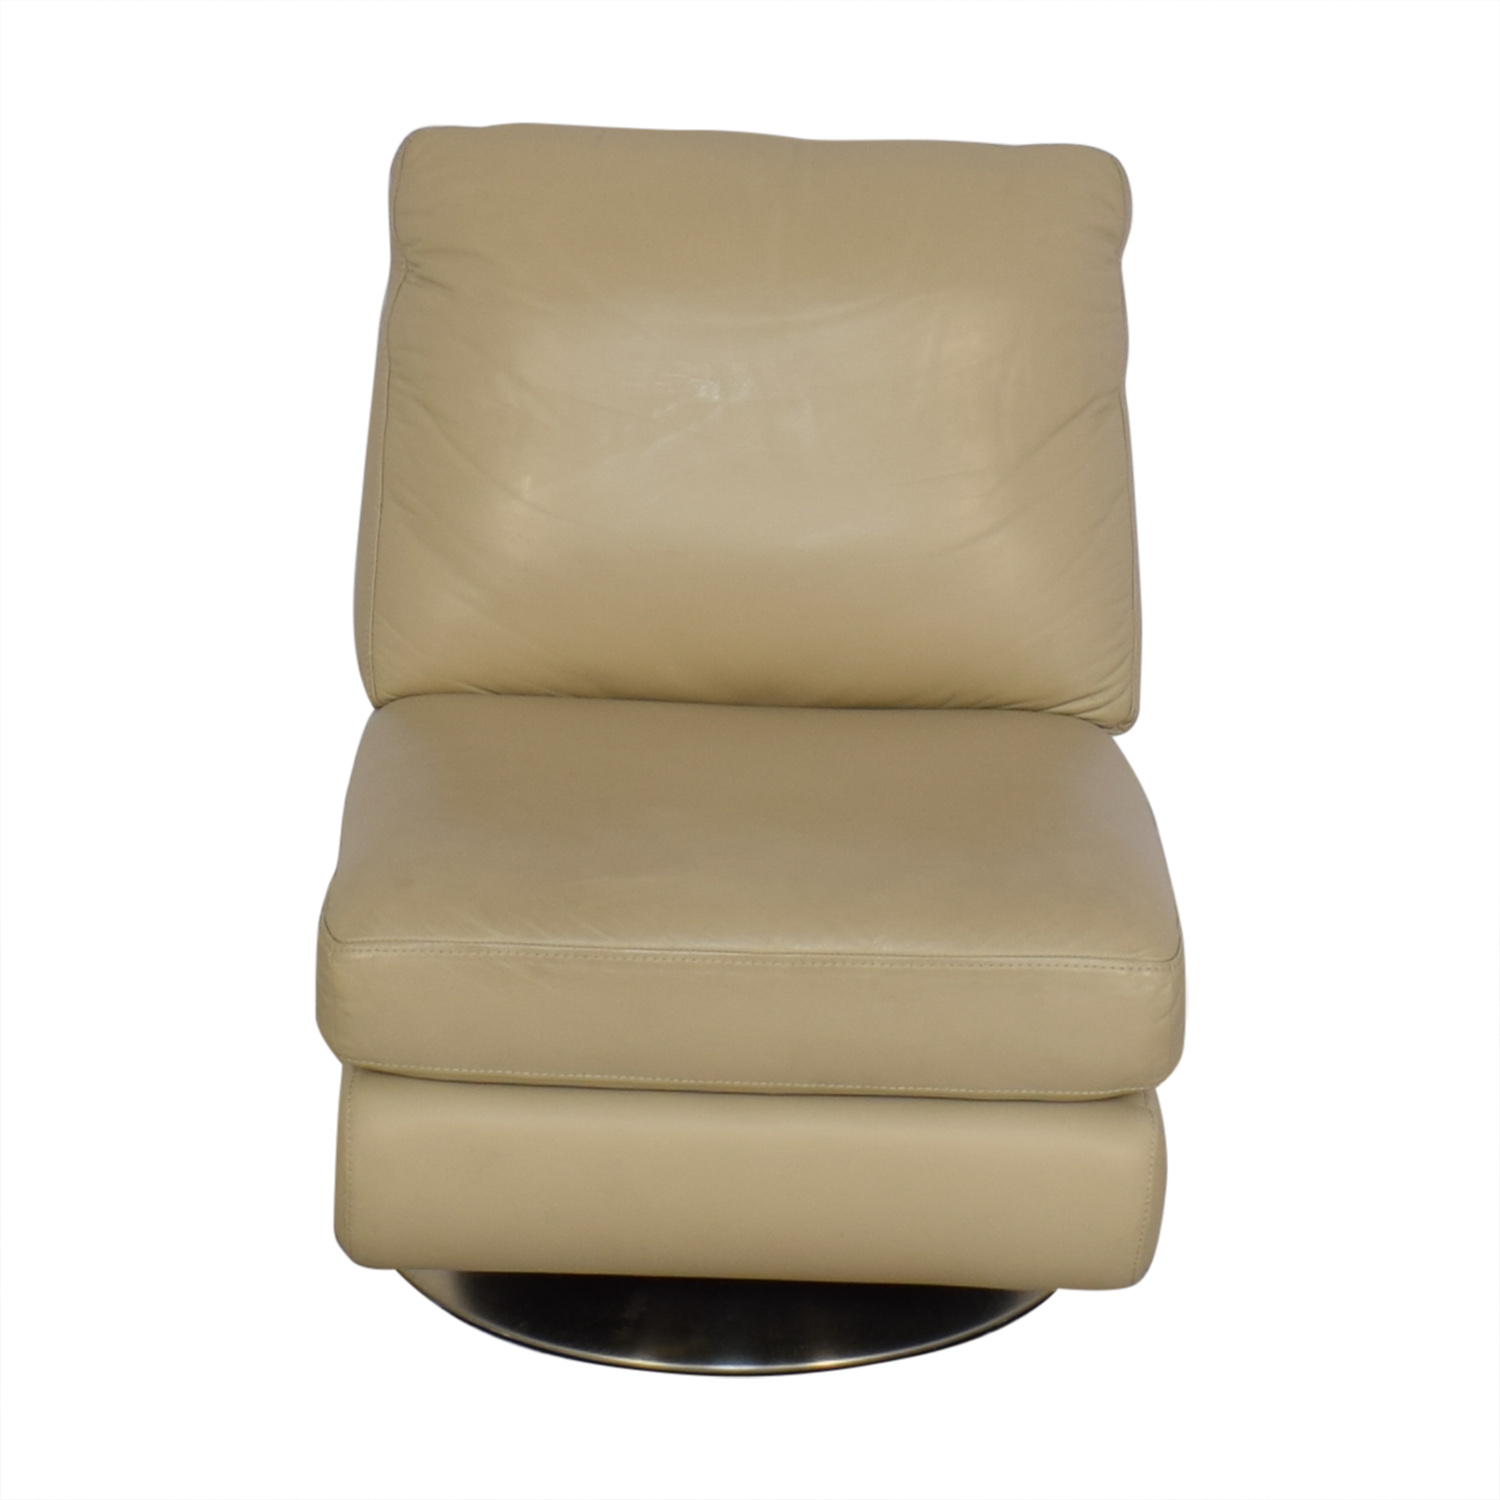 West Elm West Elm Armless Swivel Chair for sale